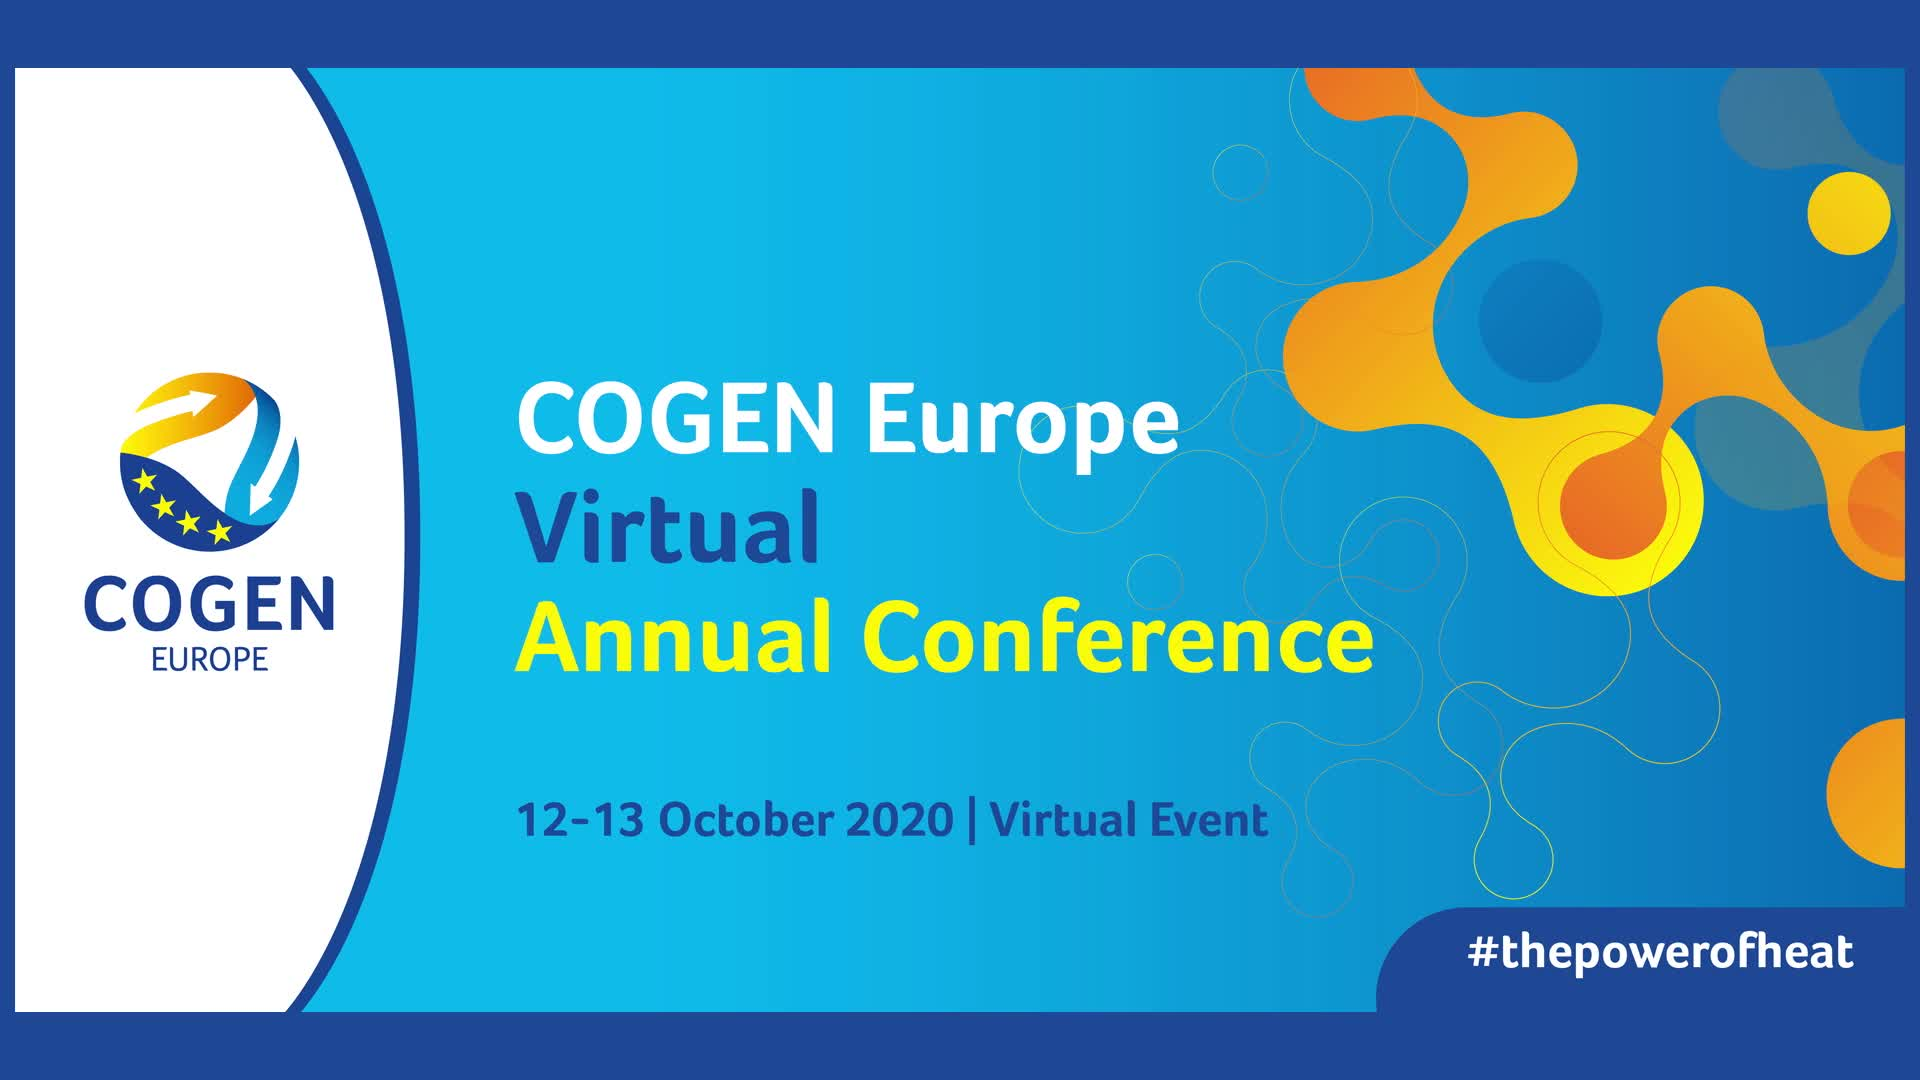 COGEN Europe Annual Conference goes virtual